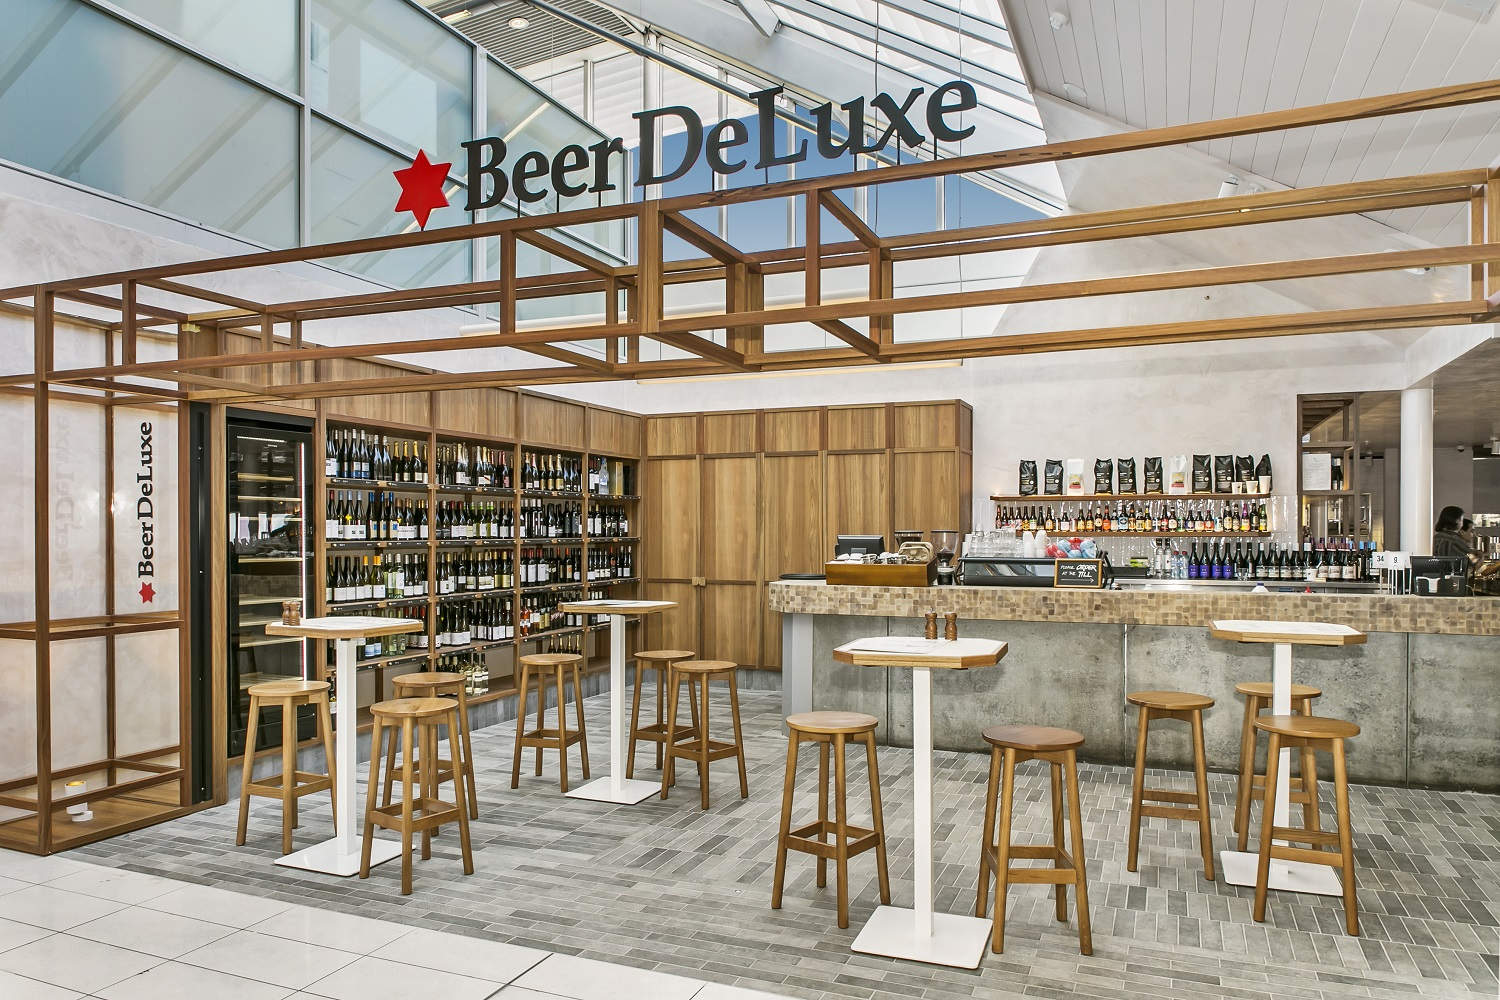 Sydney Airport unveils Beer DeLuxe at T2 Domestic terminal